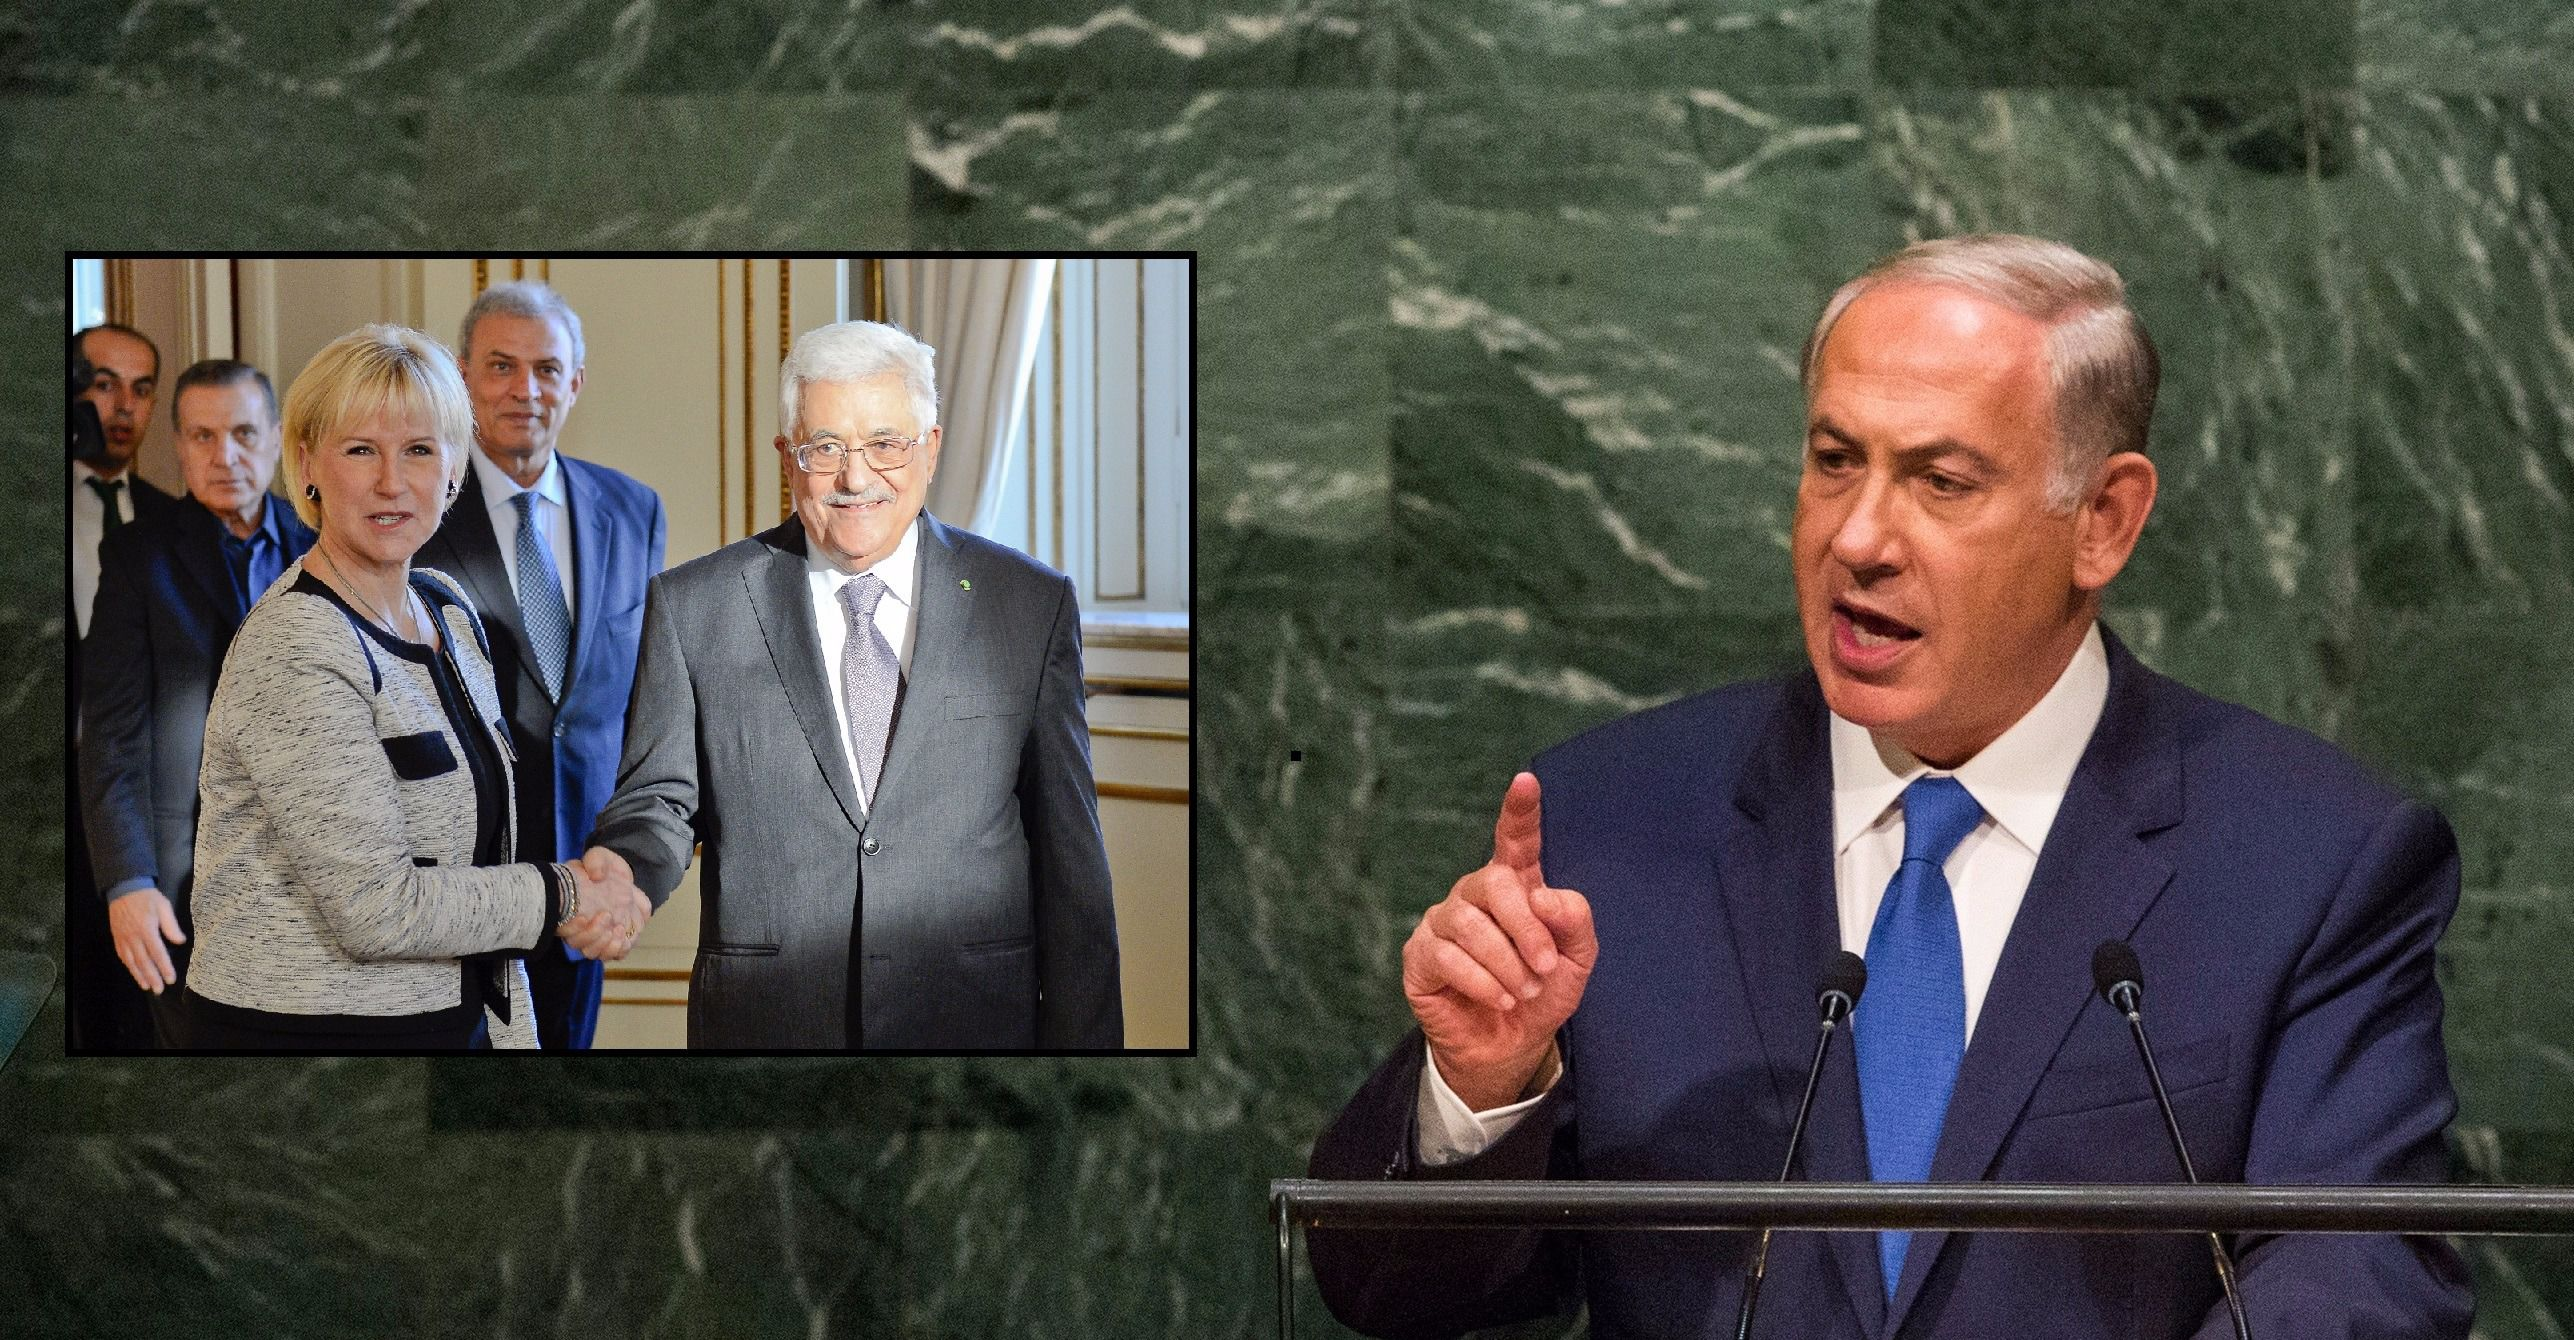 Netanyahu has condemned remarks by Sweden's Foreign Minister.